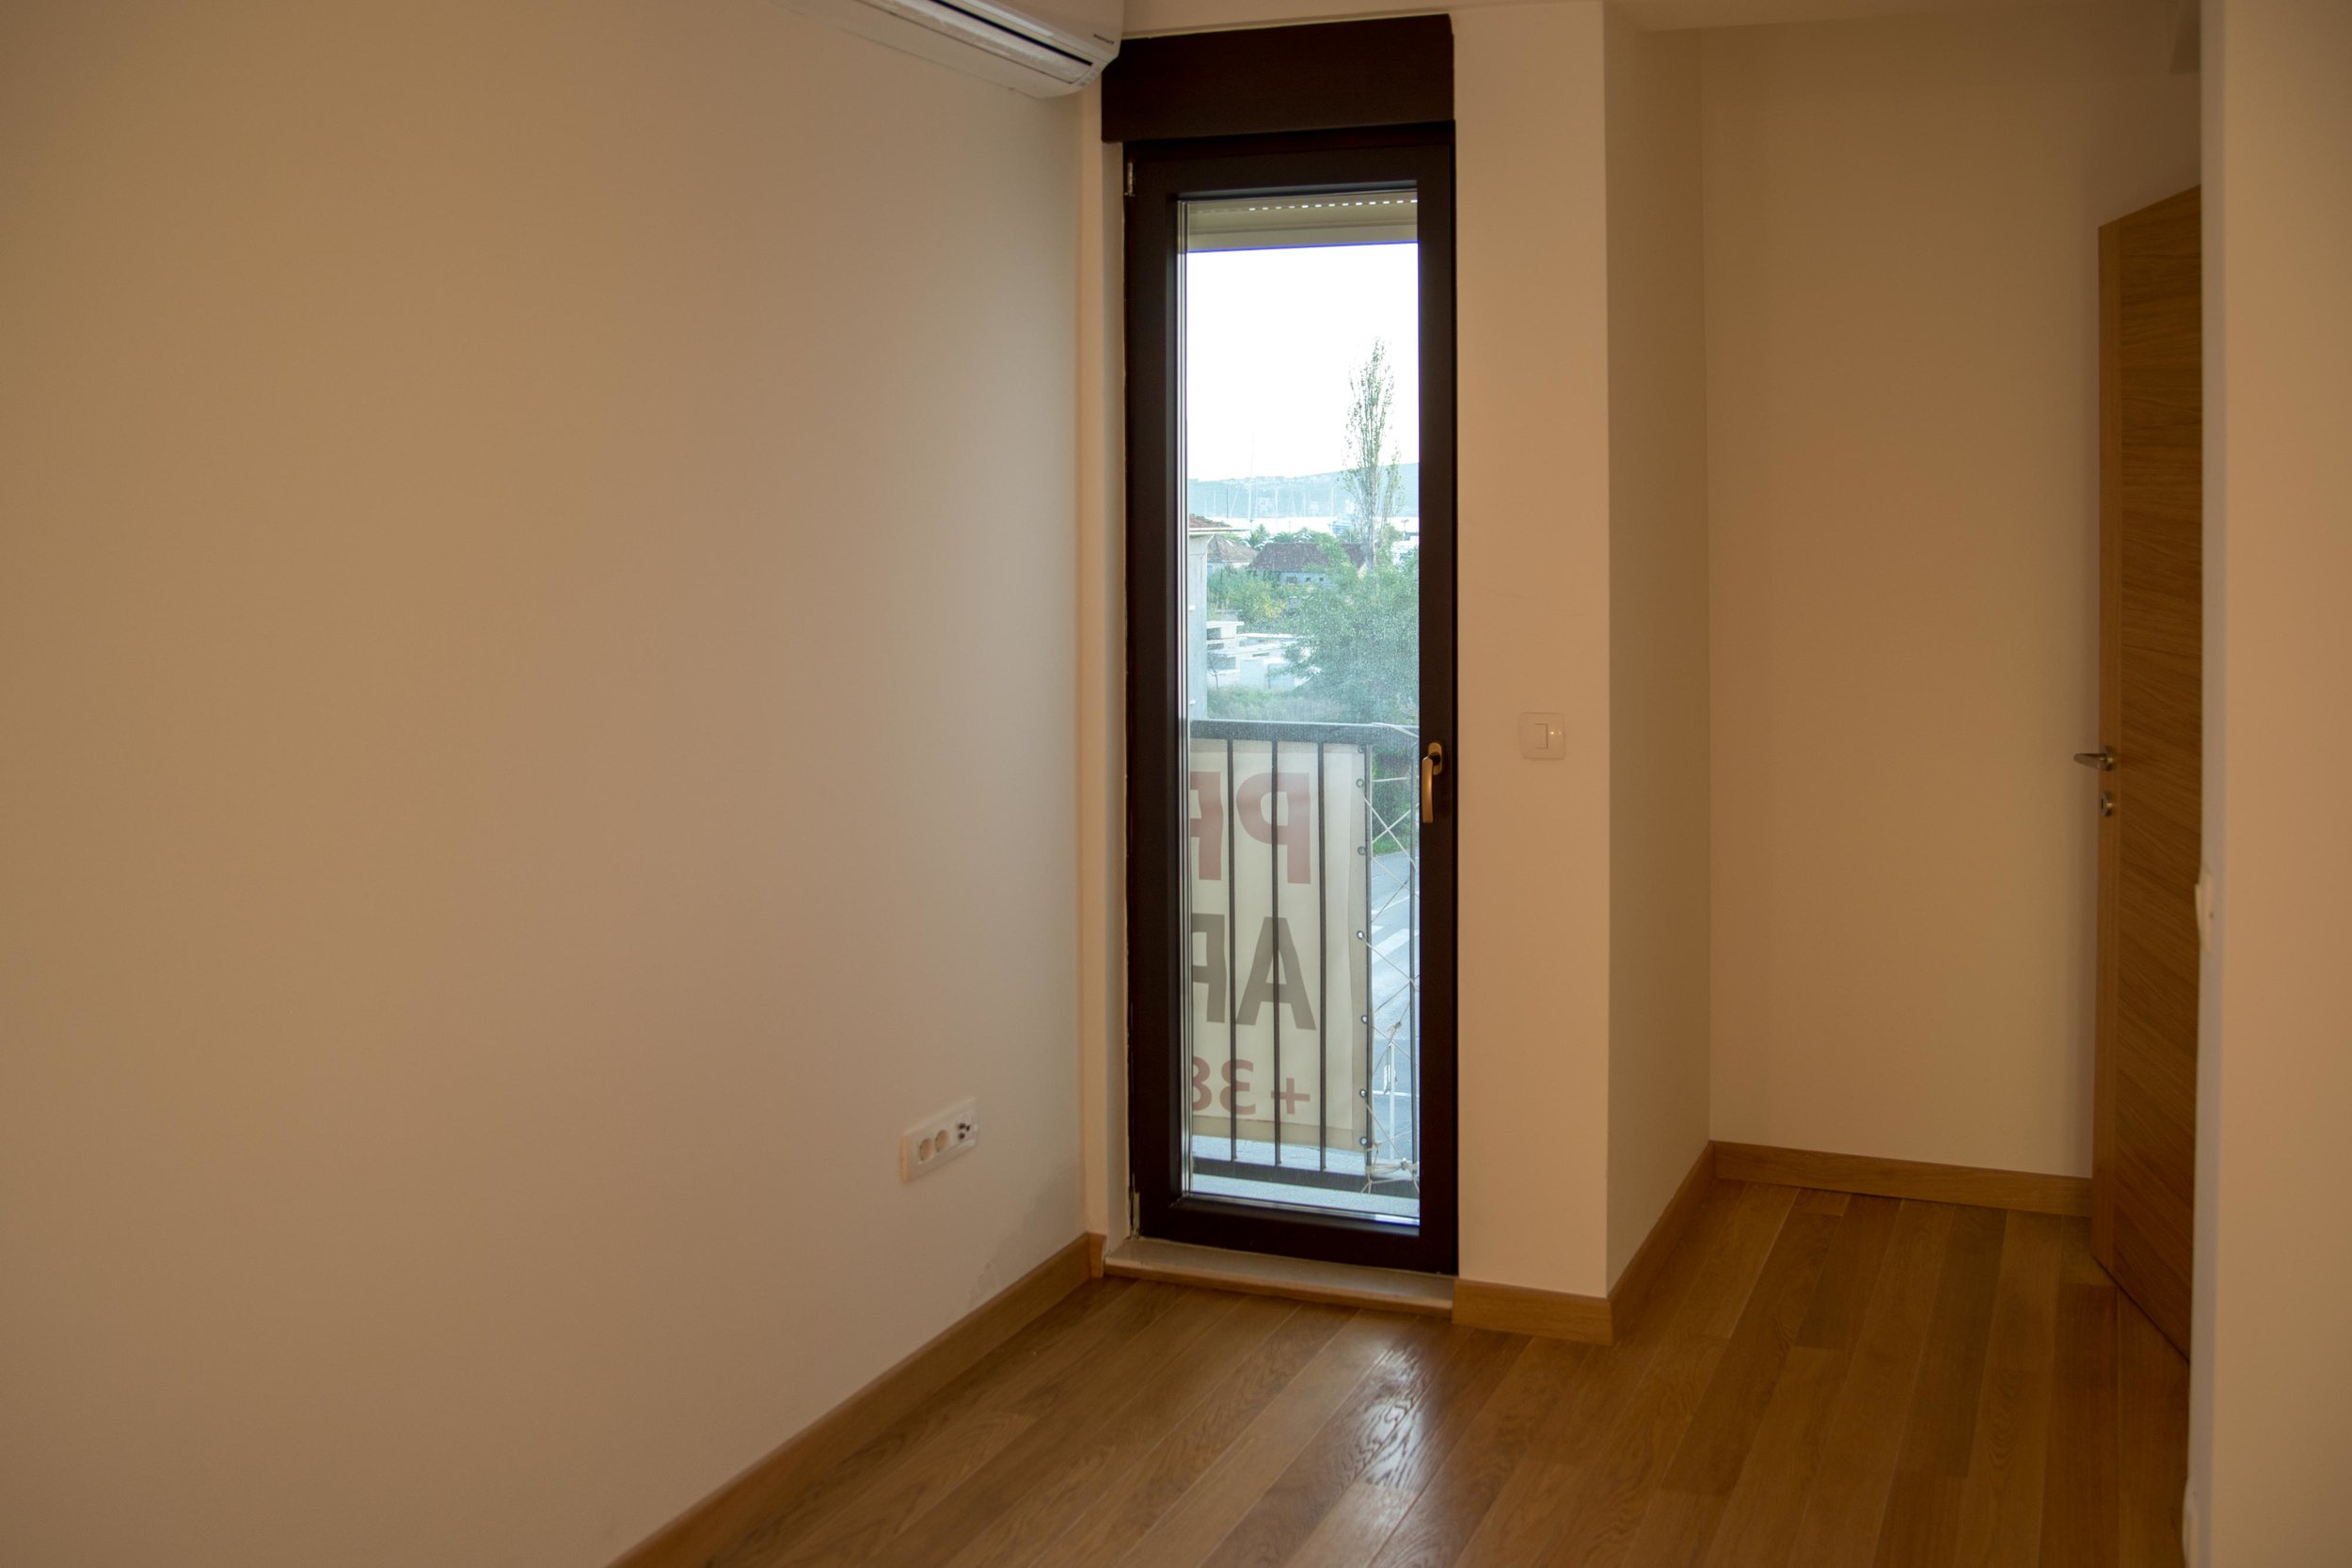 tivat-two-bedroom-apartment-for-sale-property-in-montenegro (16).jpg